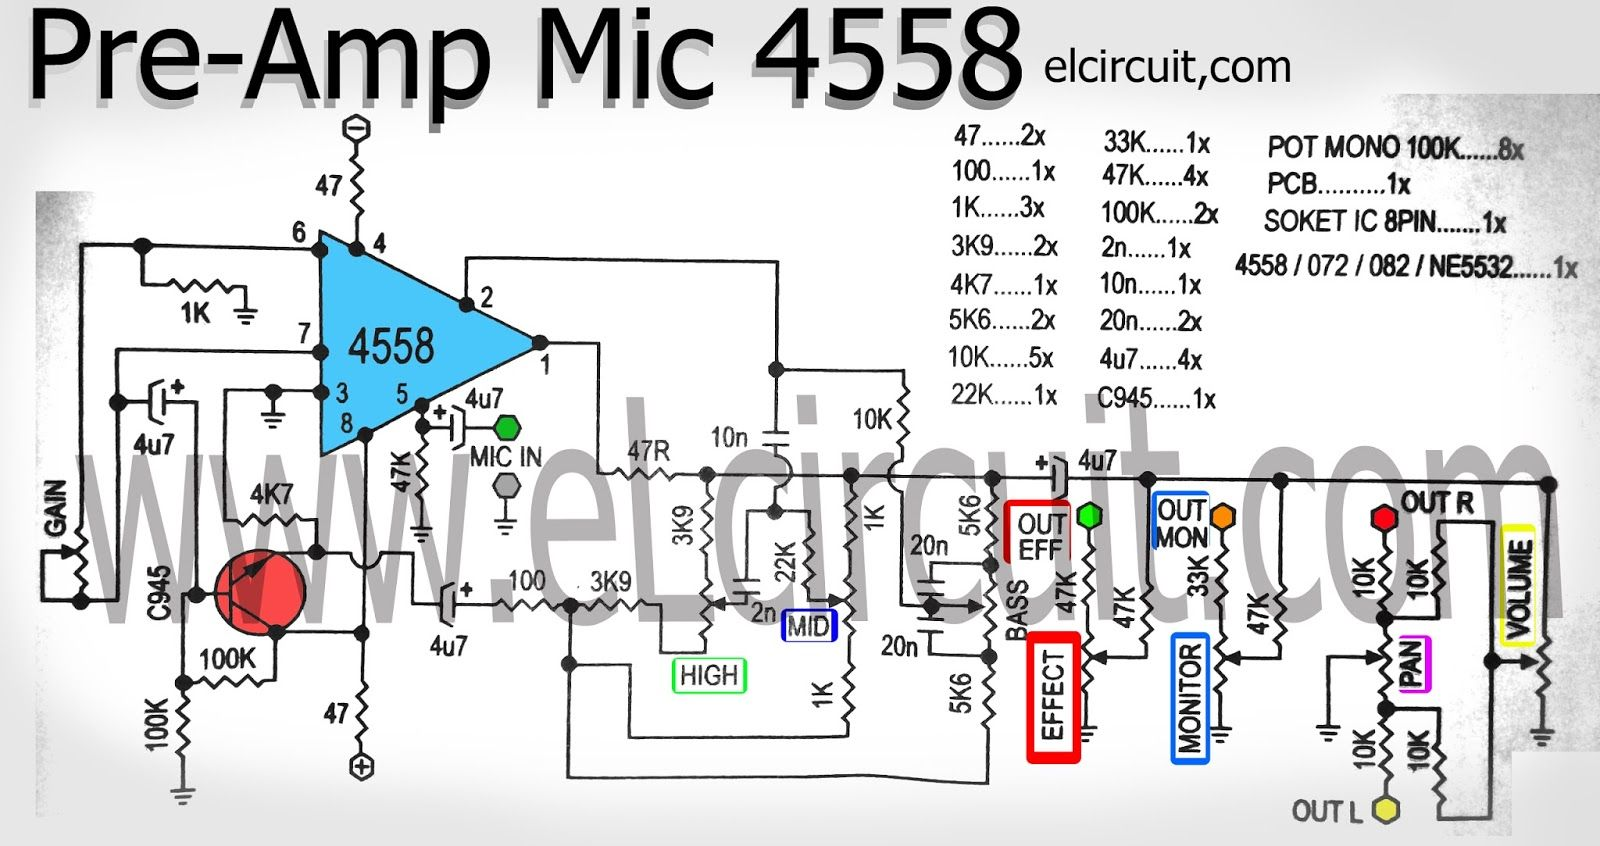 mic pre amplifier using ic 4558 ic4558 pinterest diy rh pinterest com JRC4558 IC Chip IC 4558 Pin Layout